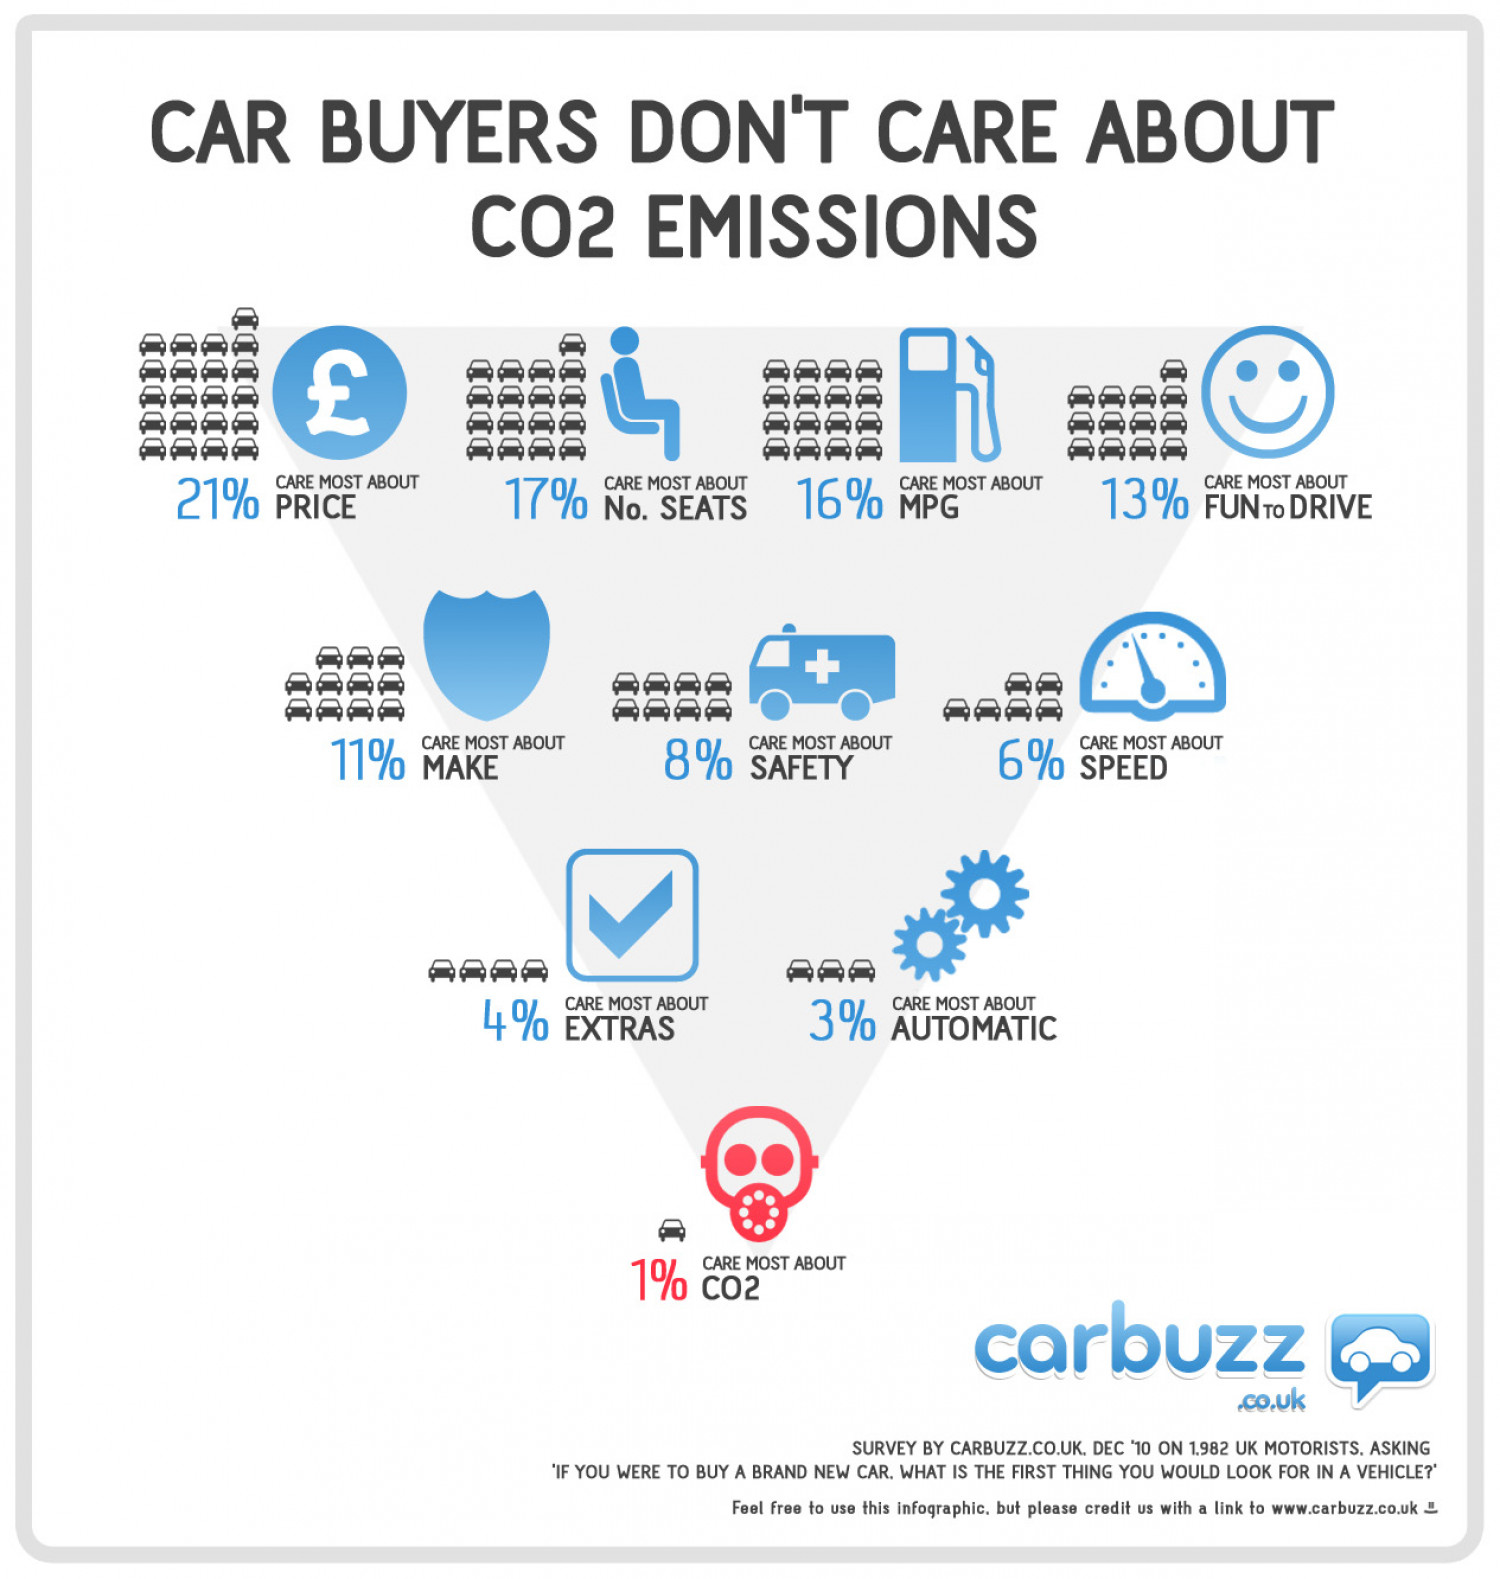 Car Buyers Don't Care About CO2 Emissions Infographic